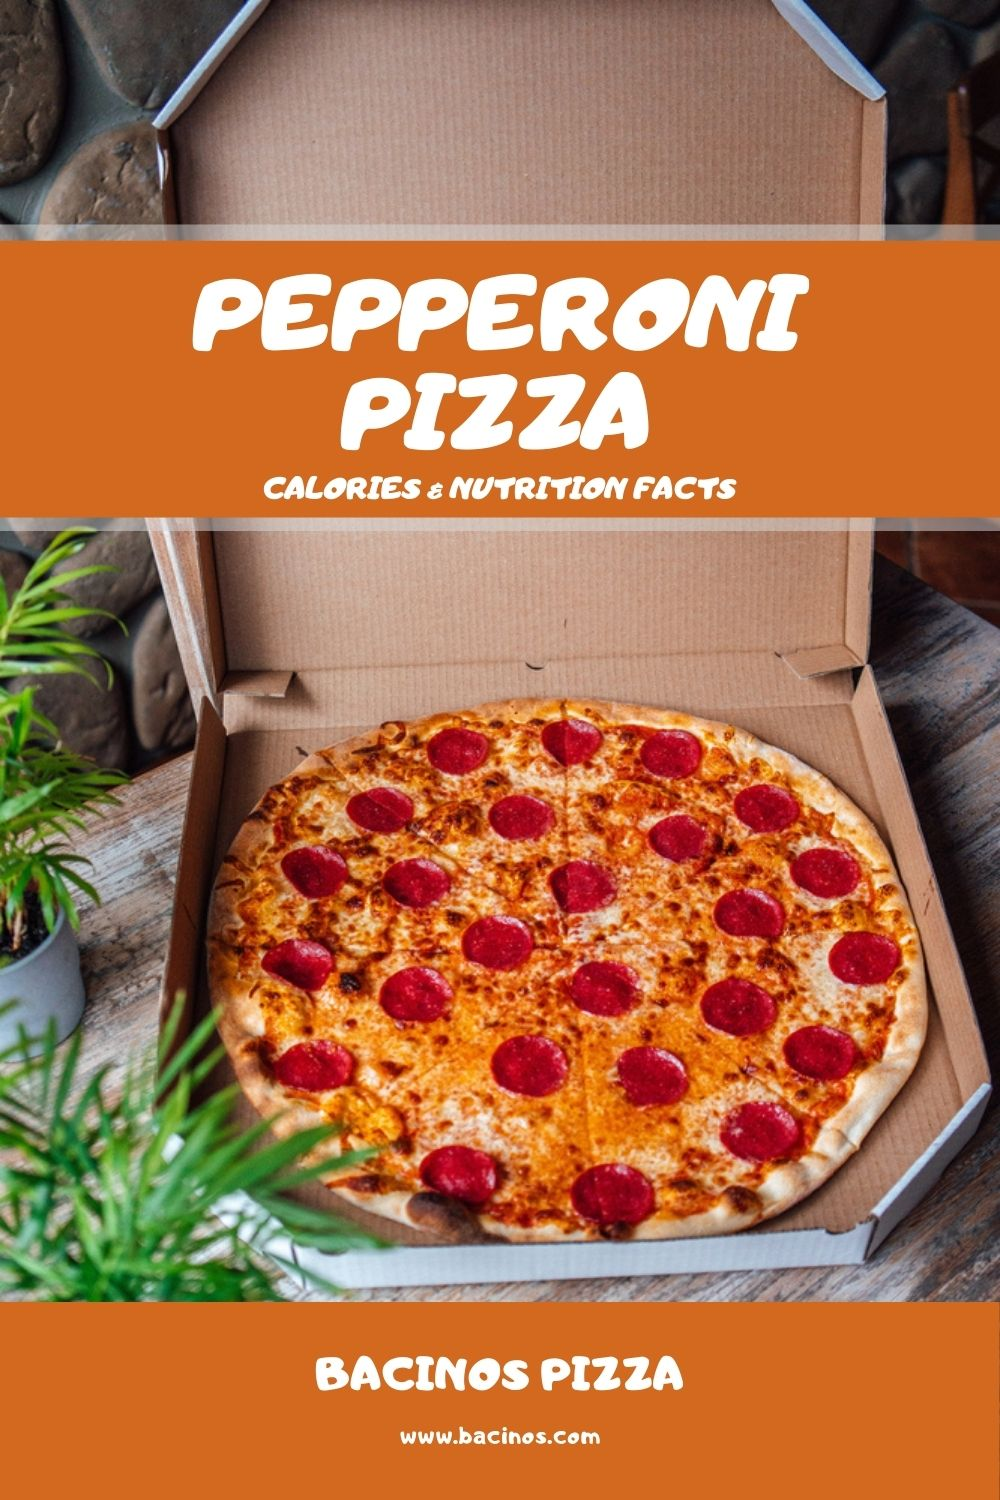 Pepperoni Pizza Calories & Nutrition Facts (Chart) 1